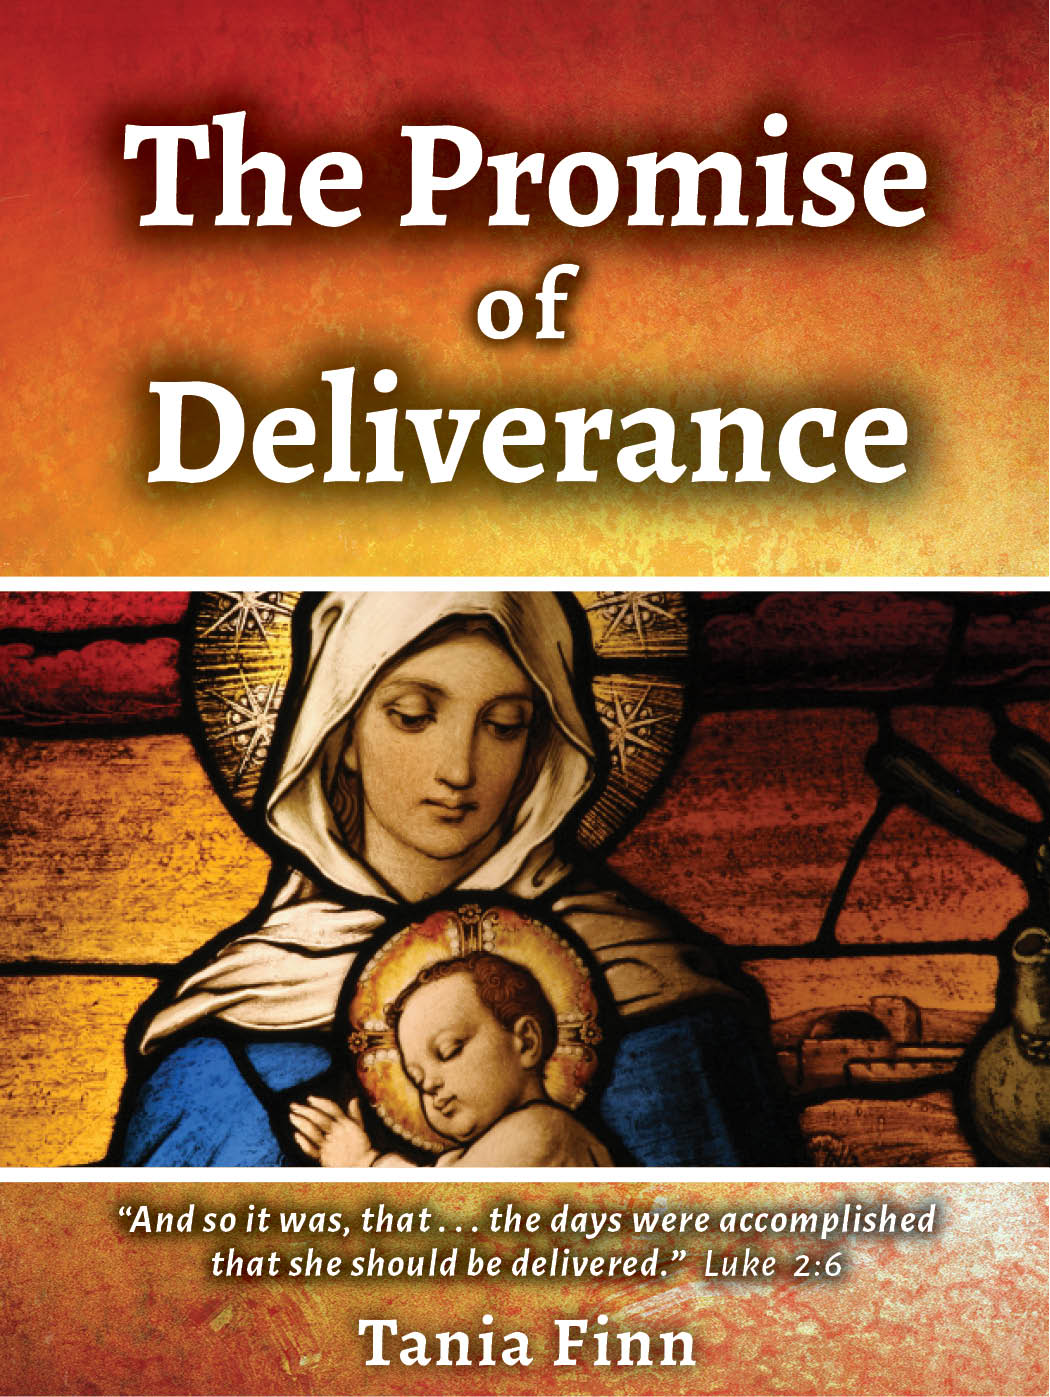 The Promise of Deliverance – Physical Booklet (2020)